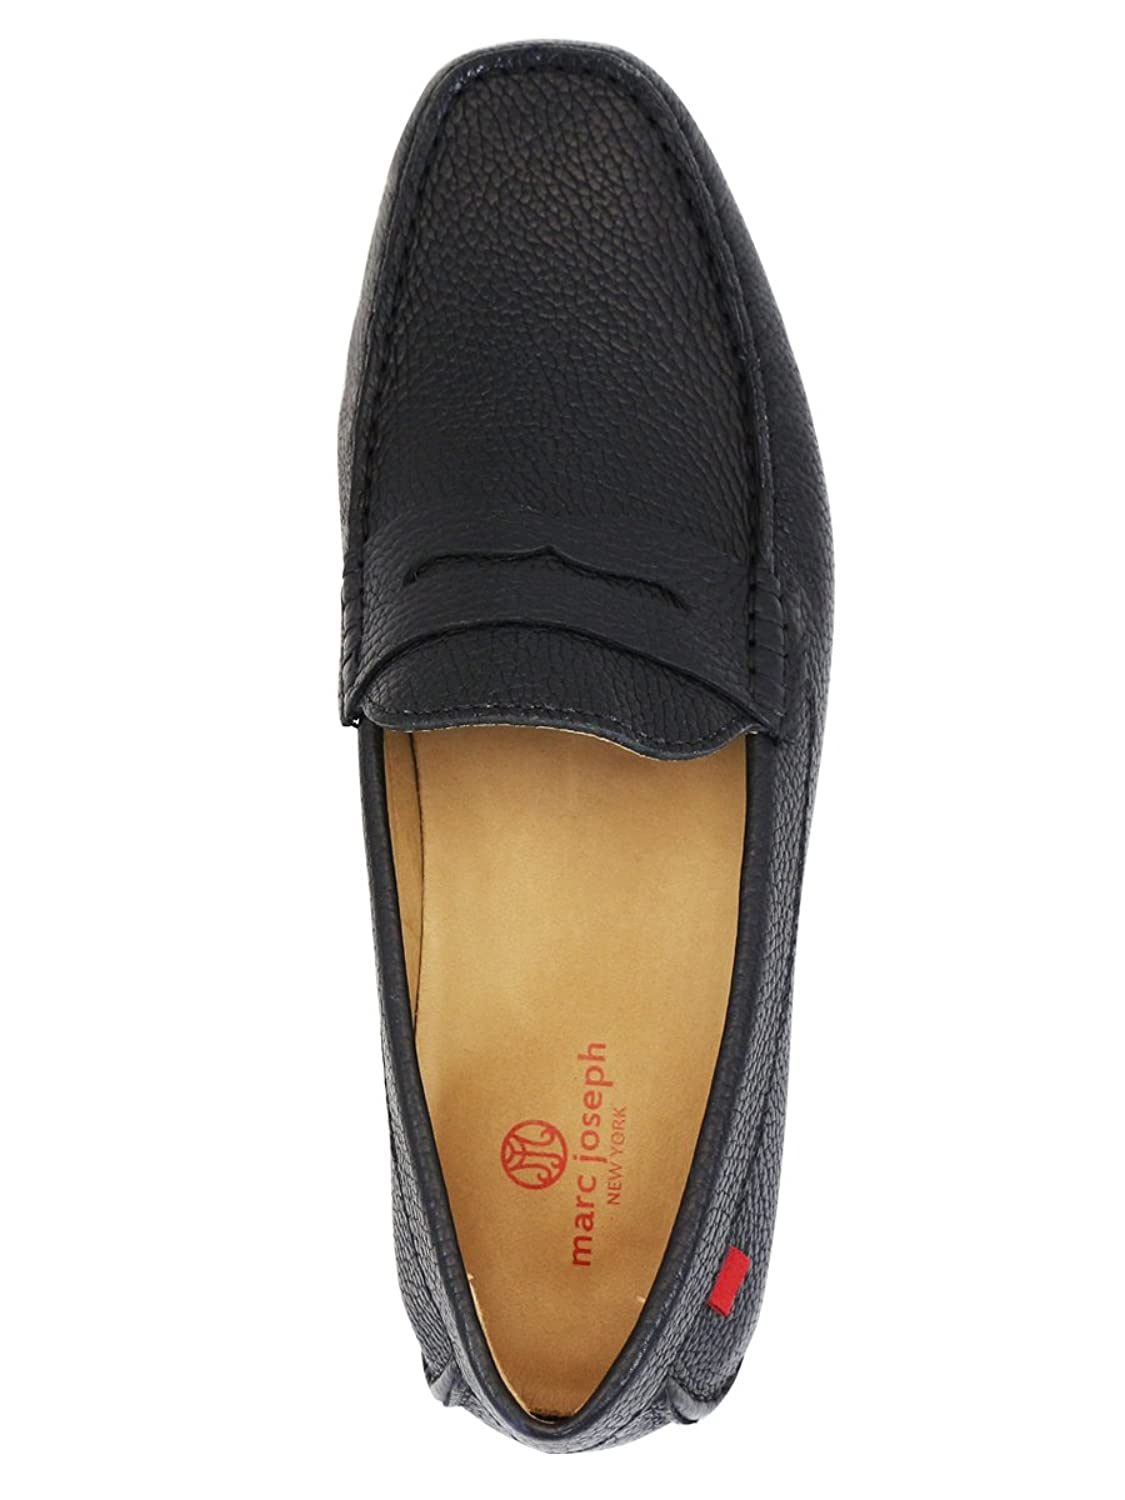 Marc Joseph New York Men's Leather Fashion Shoes Union Street Penny Loafer:  Amazon.co.uk: Shoes & Bags